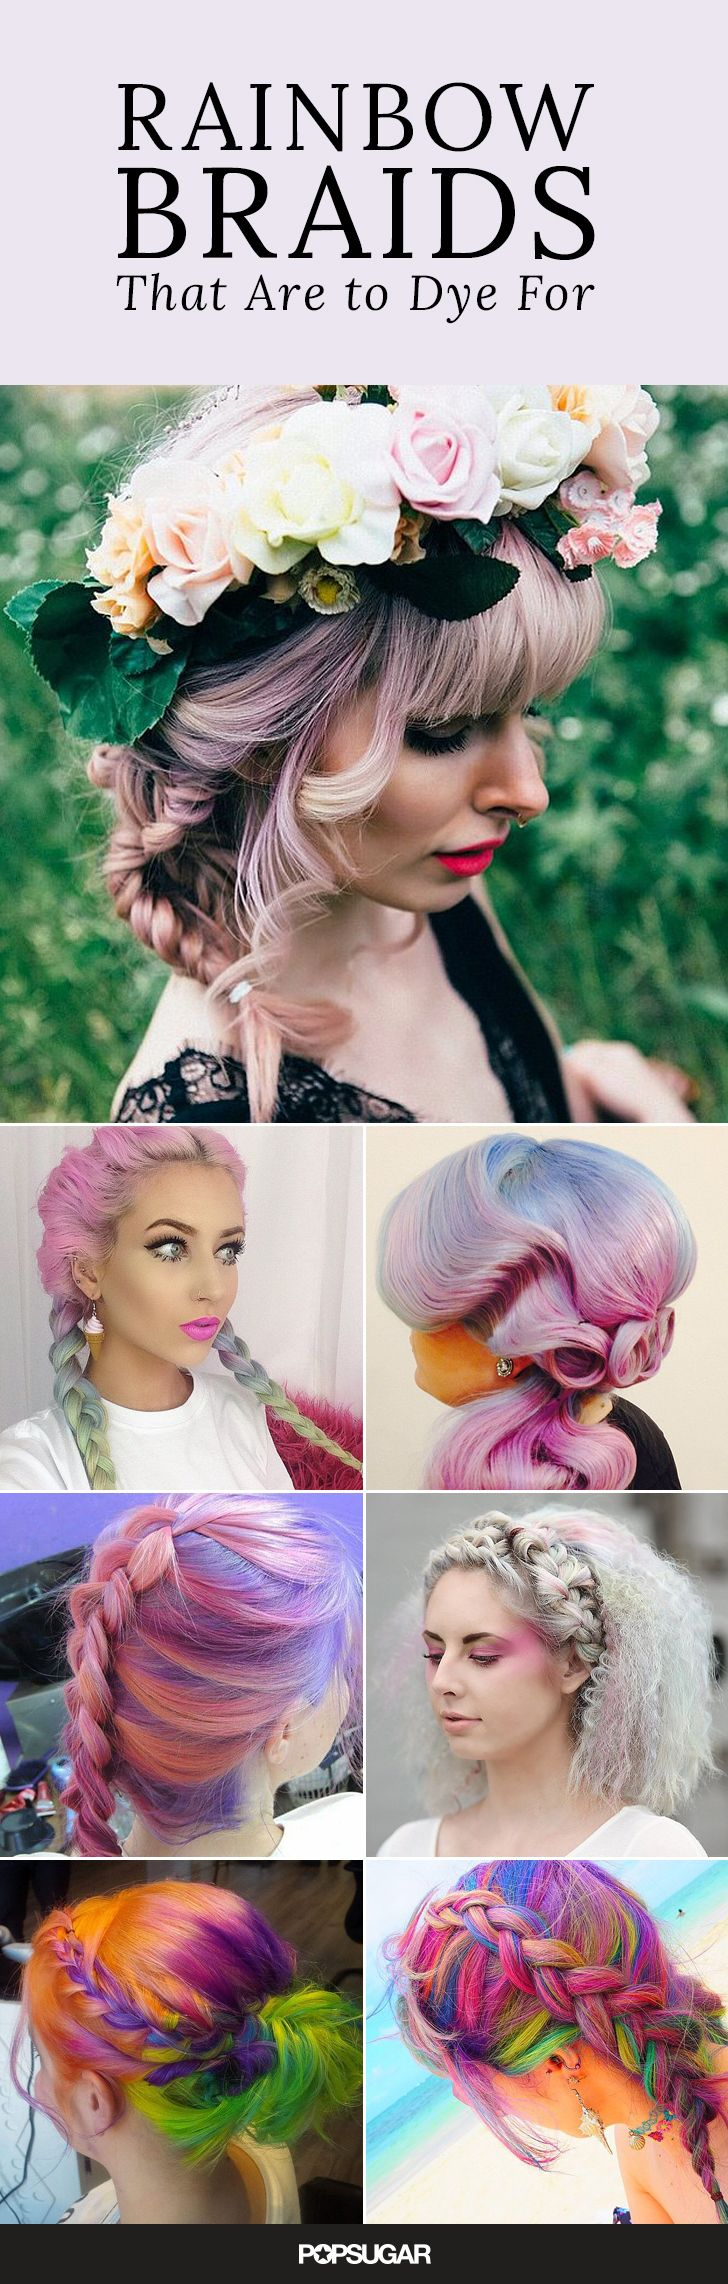 347 best makeup u0026 hair images on pinterest hairstyles colorful